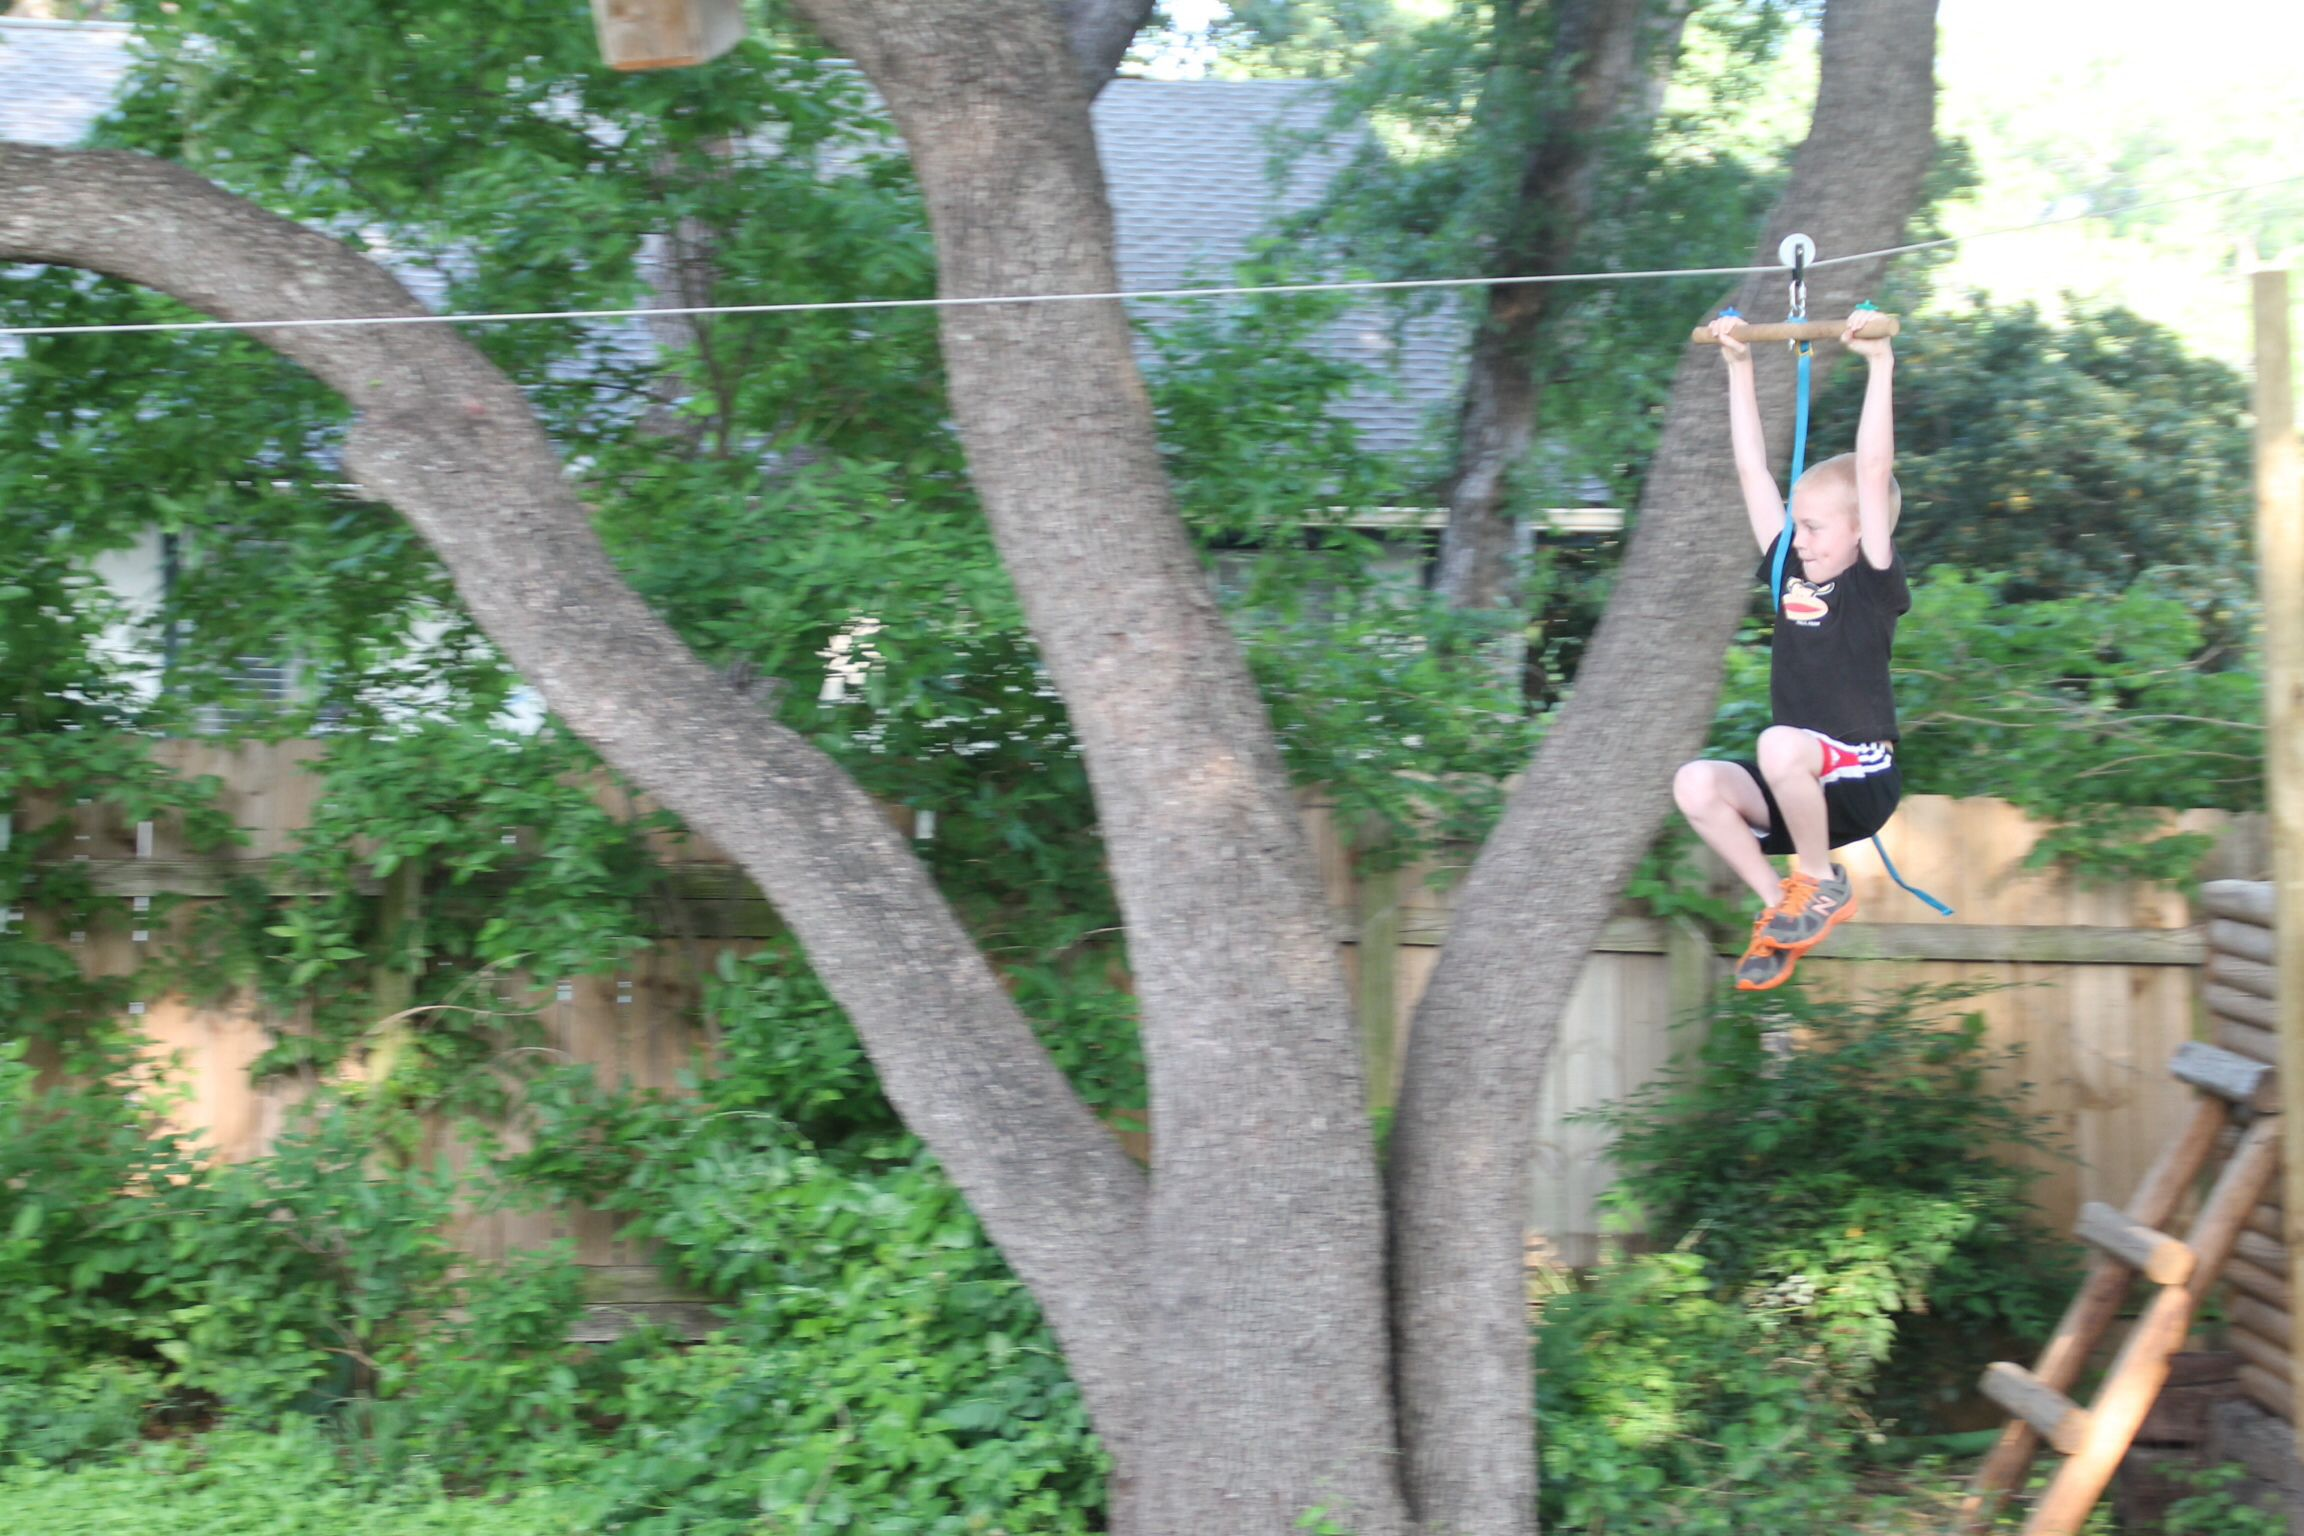 Hopefully someday we could get a cool zipline like this ...